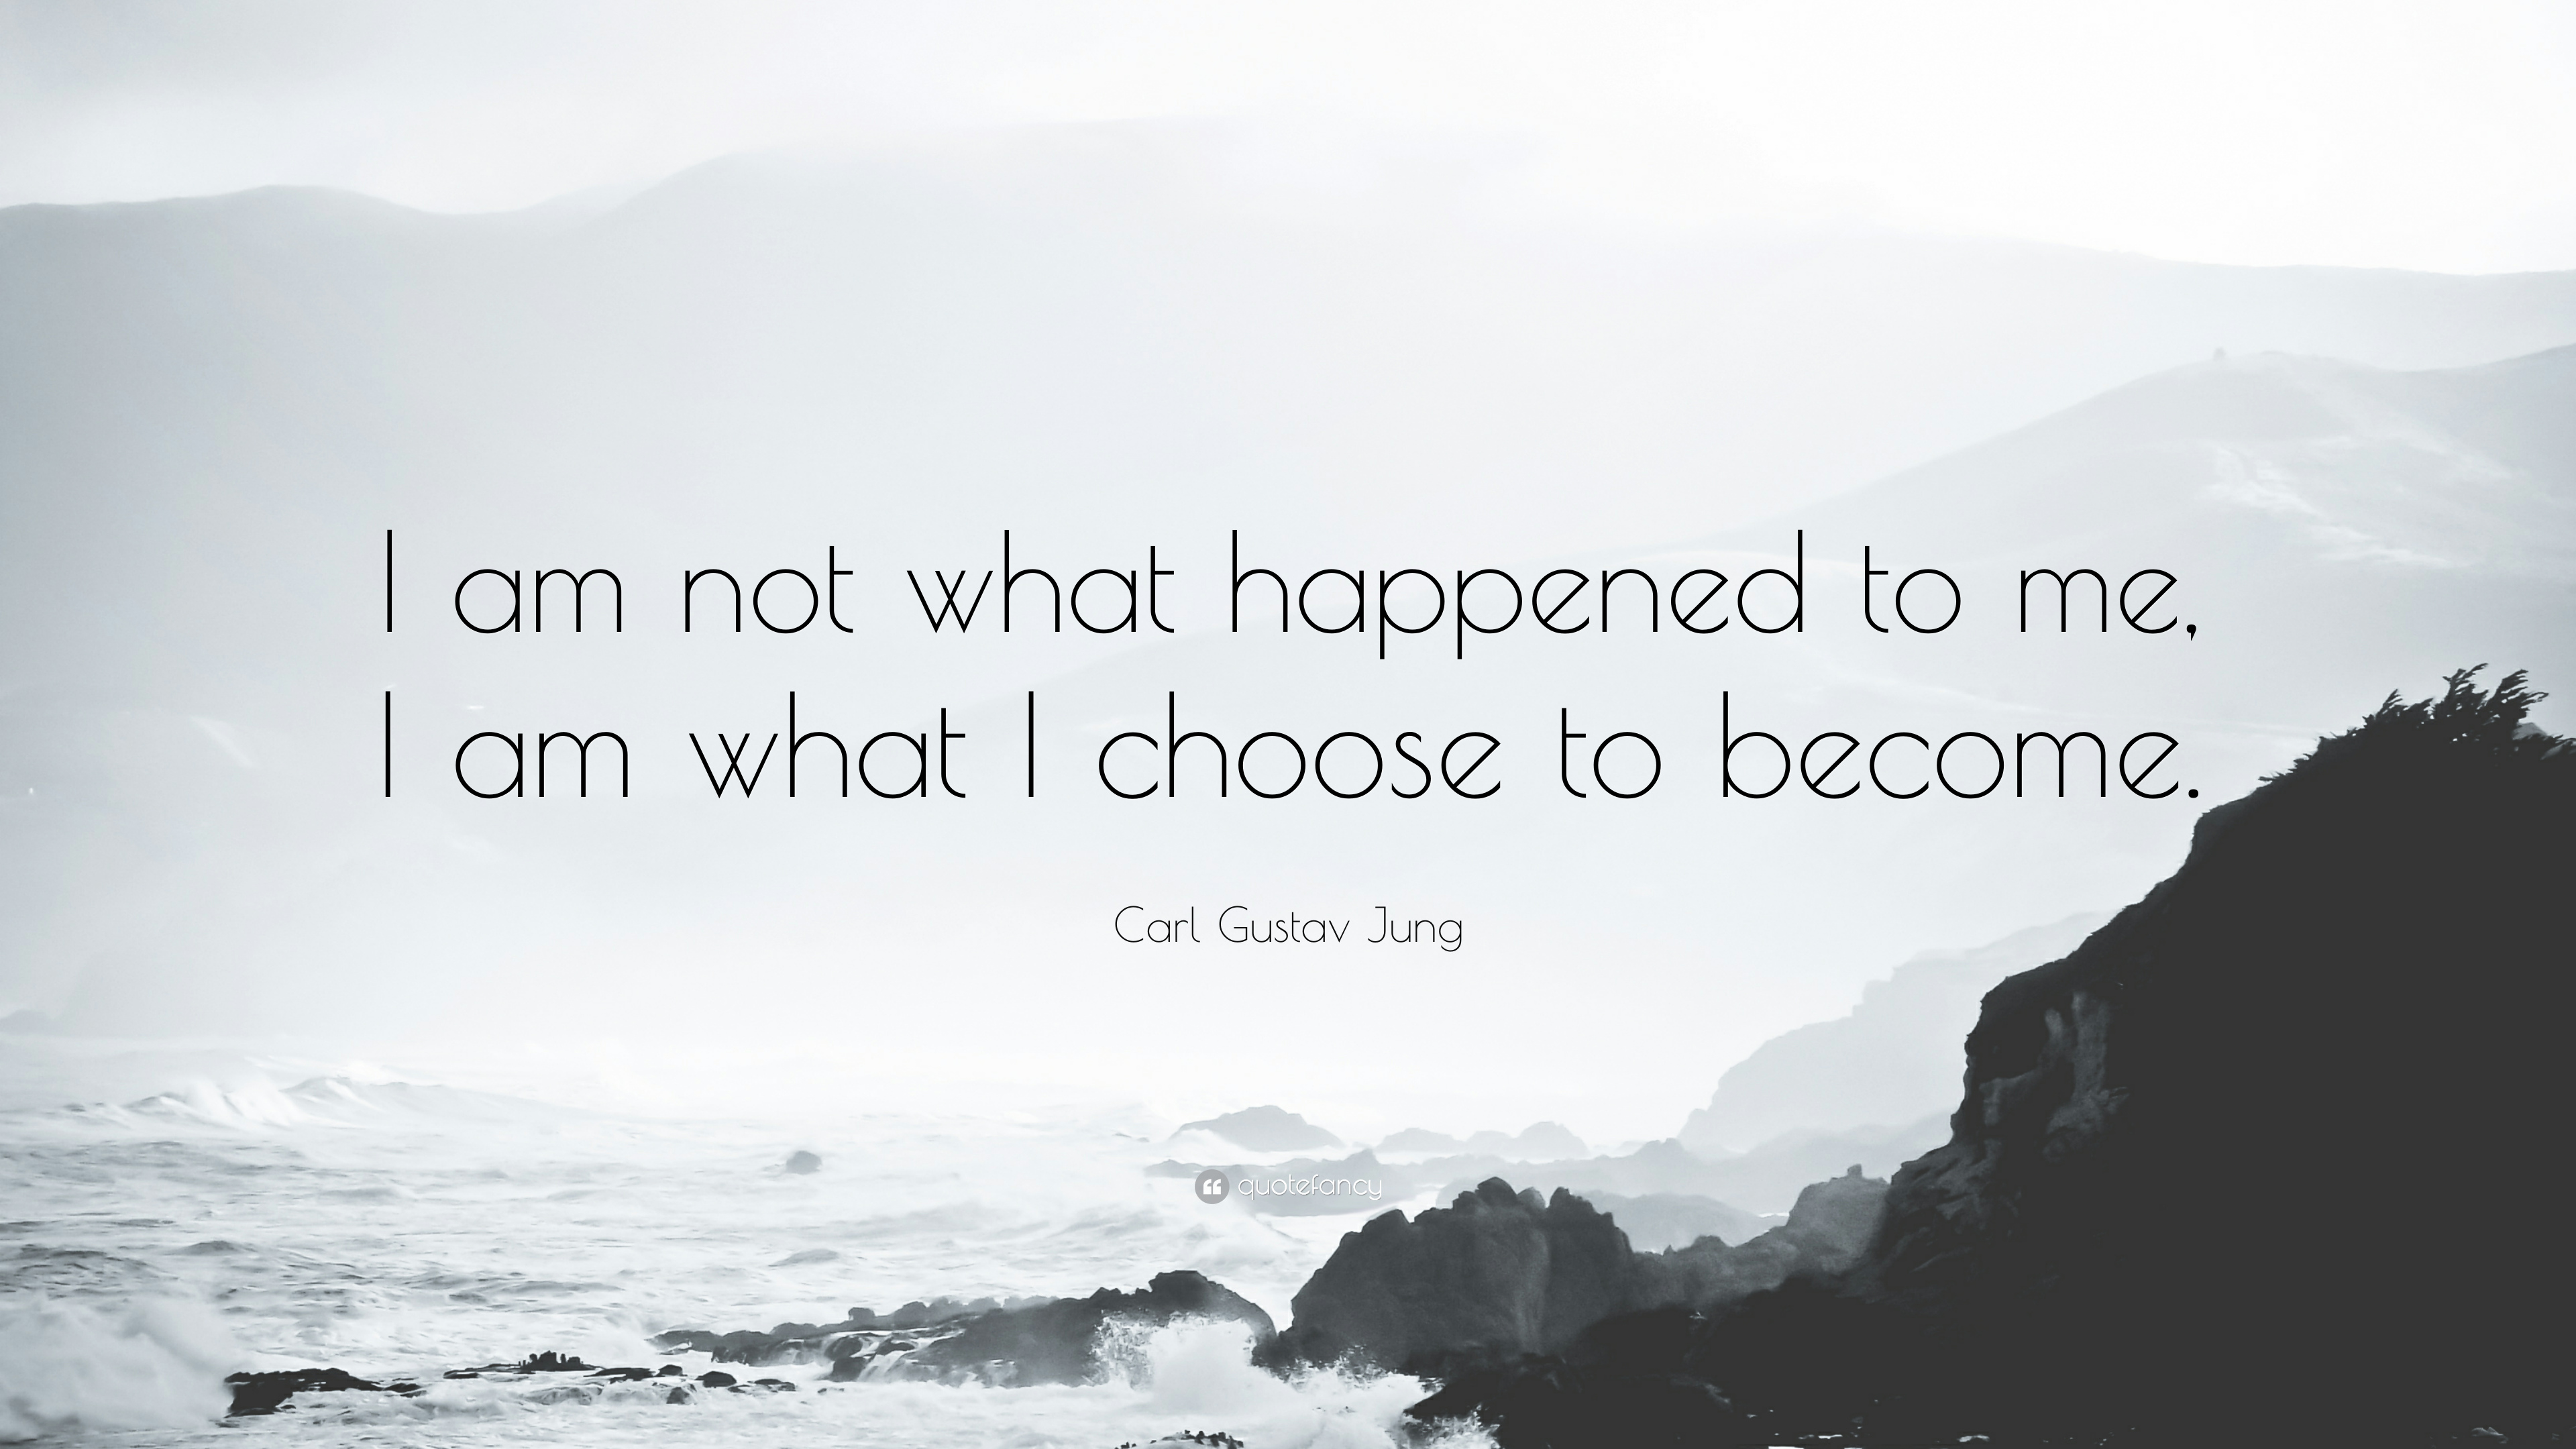 """Carl Gustav Jung Quote: """"I am not what happened to me, I am what I choose  to become."""" (23 wallpapers) - Quotefancy"""